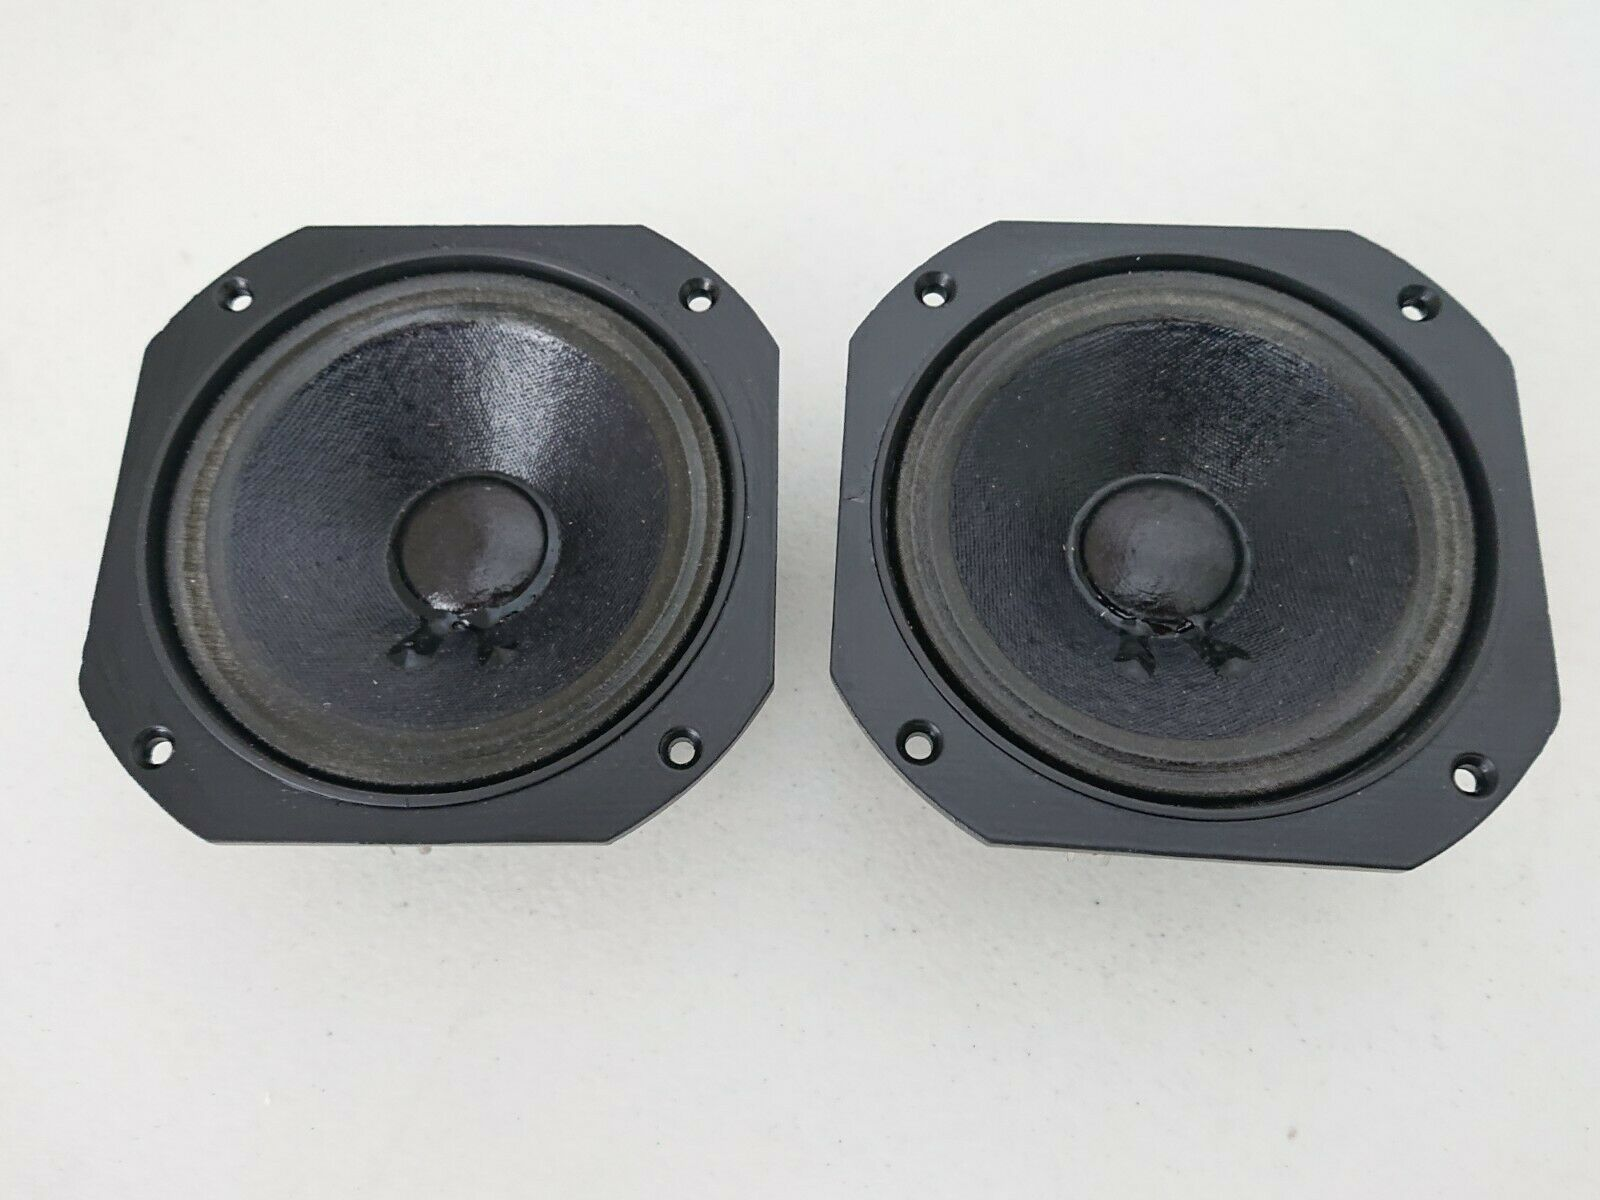 s l1600 - JBL Model 4410A Studio Monitor Midrange Speakers 104H-2